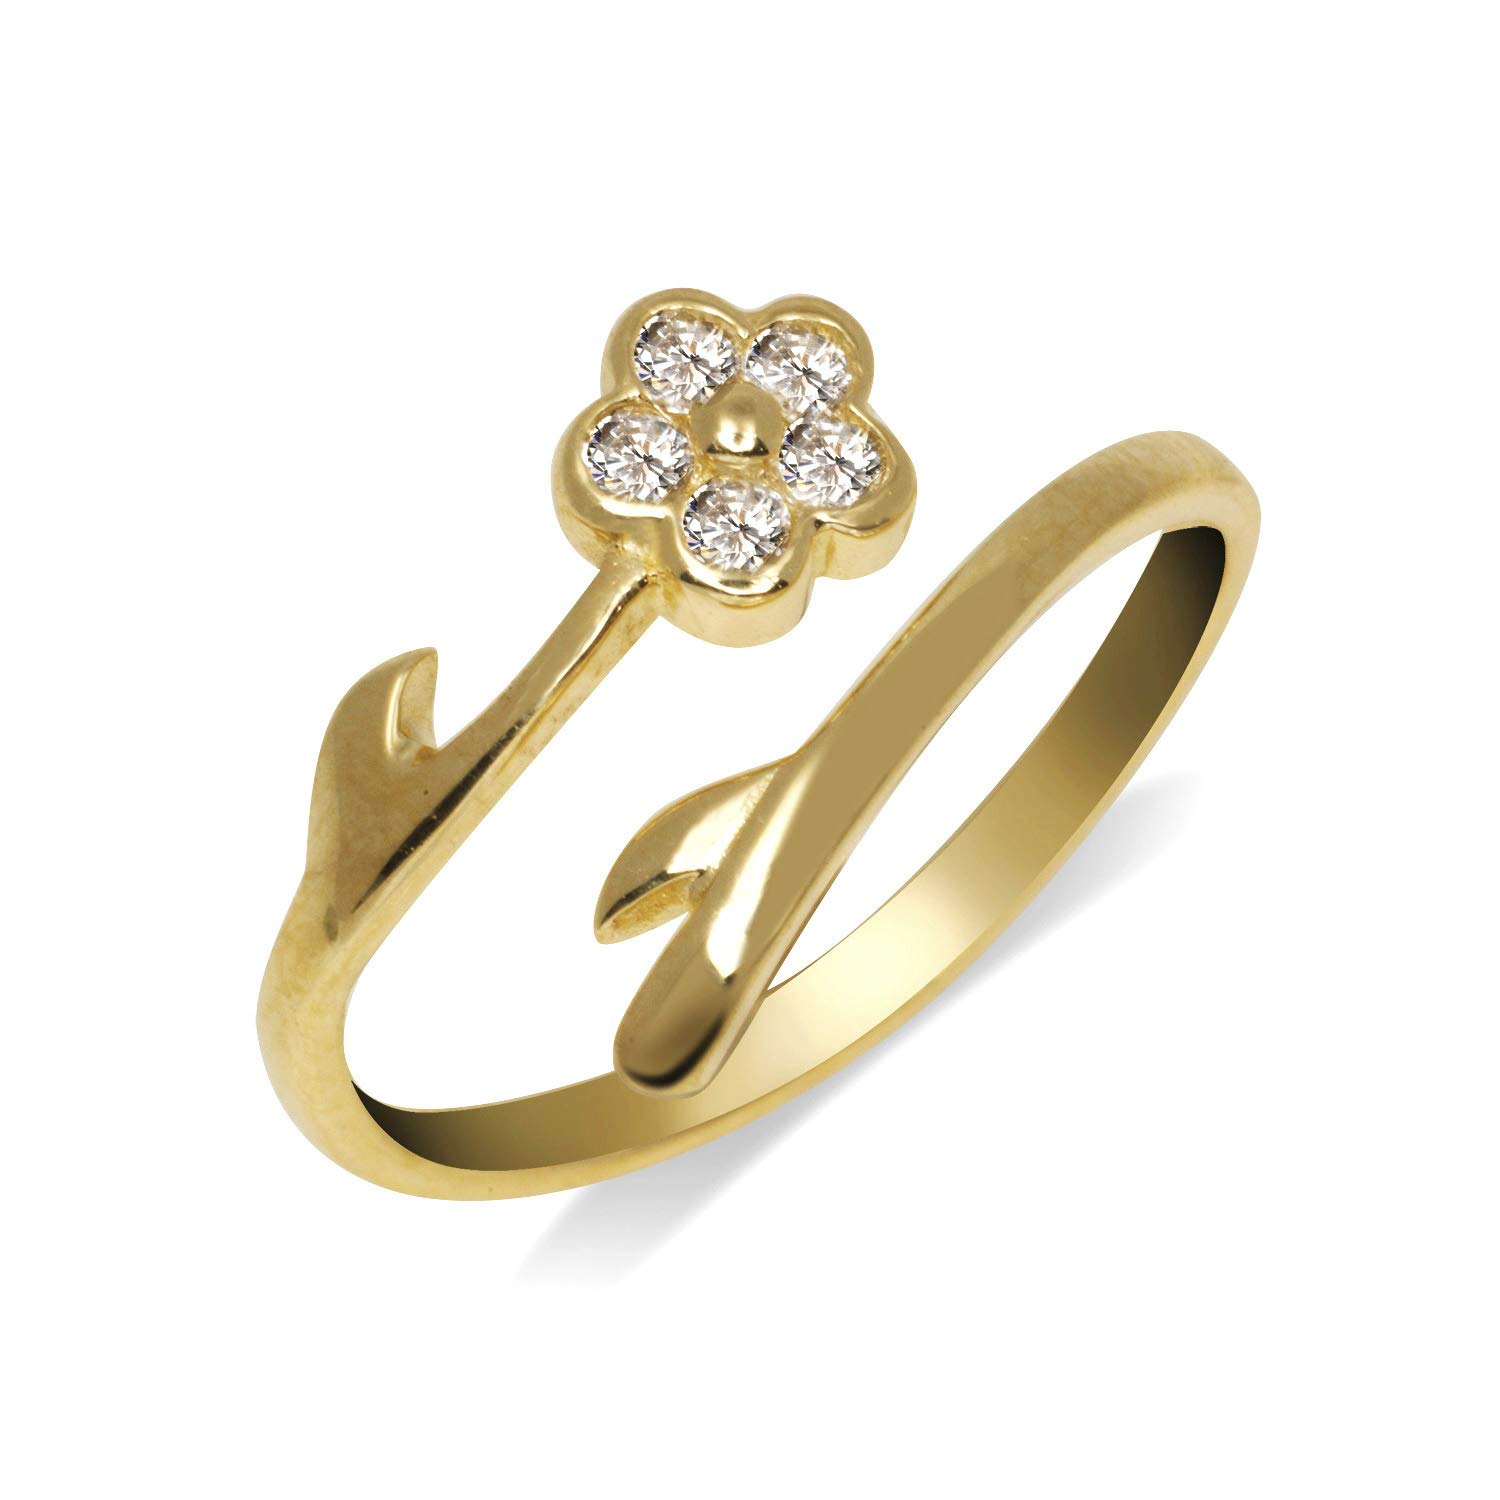 JewelryWeb Solid 10K Yellow or White Gold Elegant Flower Bypass Cubic Zirconia CZ Adjustable Toe Ring (8mmx15mm) (Yellow-Gold) by JewelryWeb